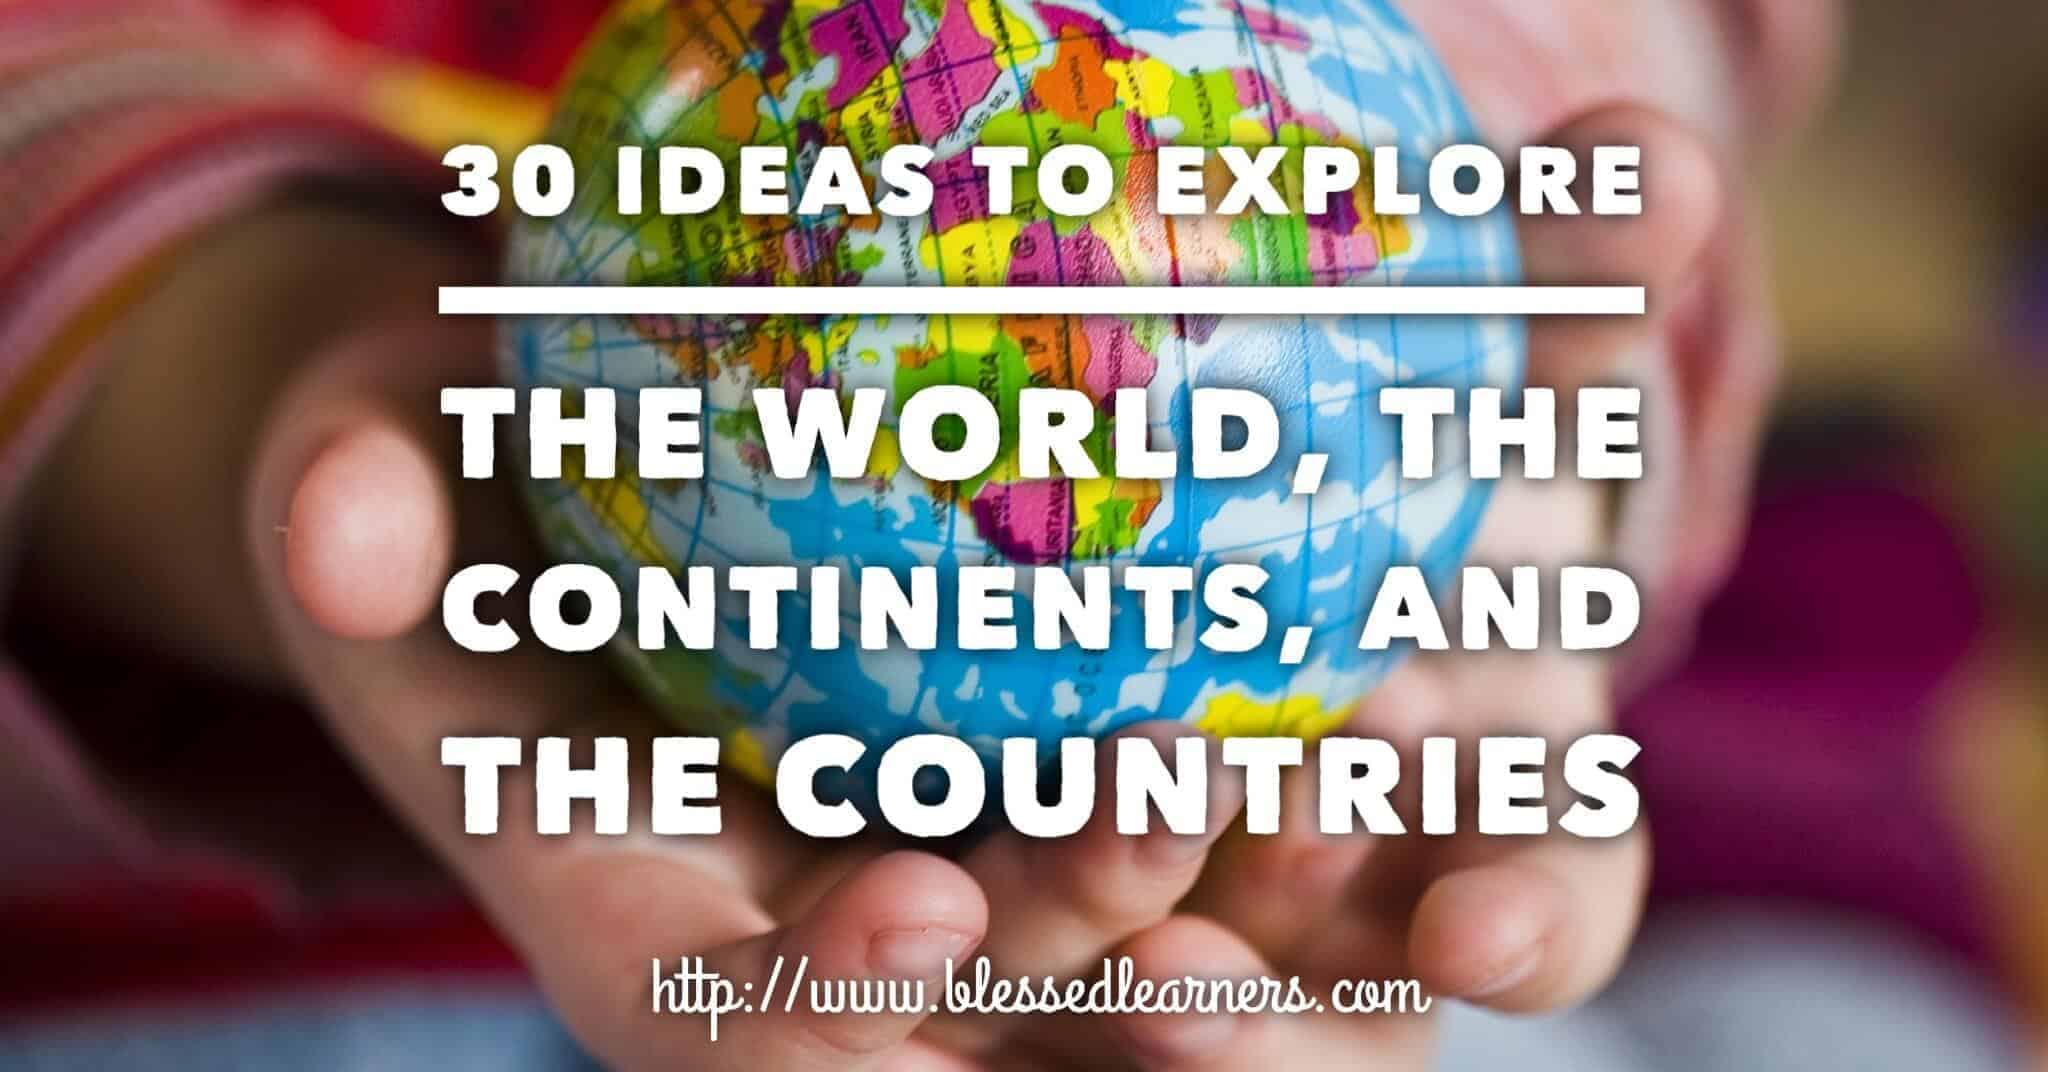 30 Ideas to Explore The World, The Continents, and The Countries